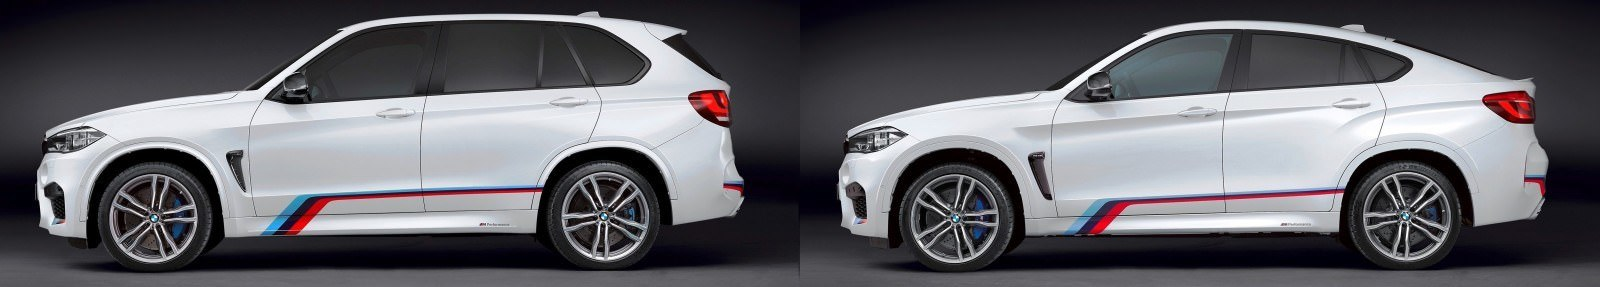 BMW M Performance Parts for 2015 X5M and X6M 10-horz